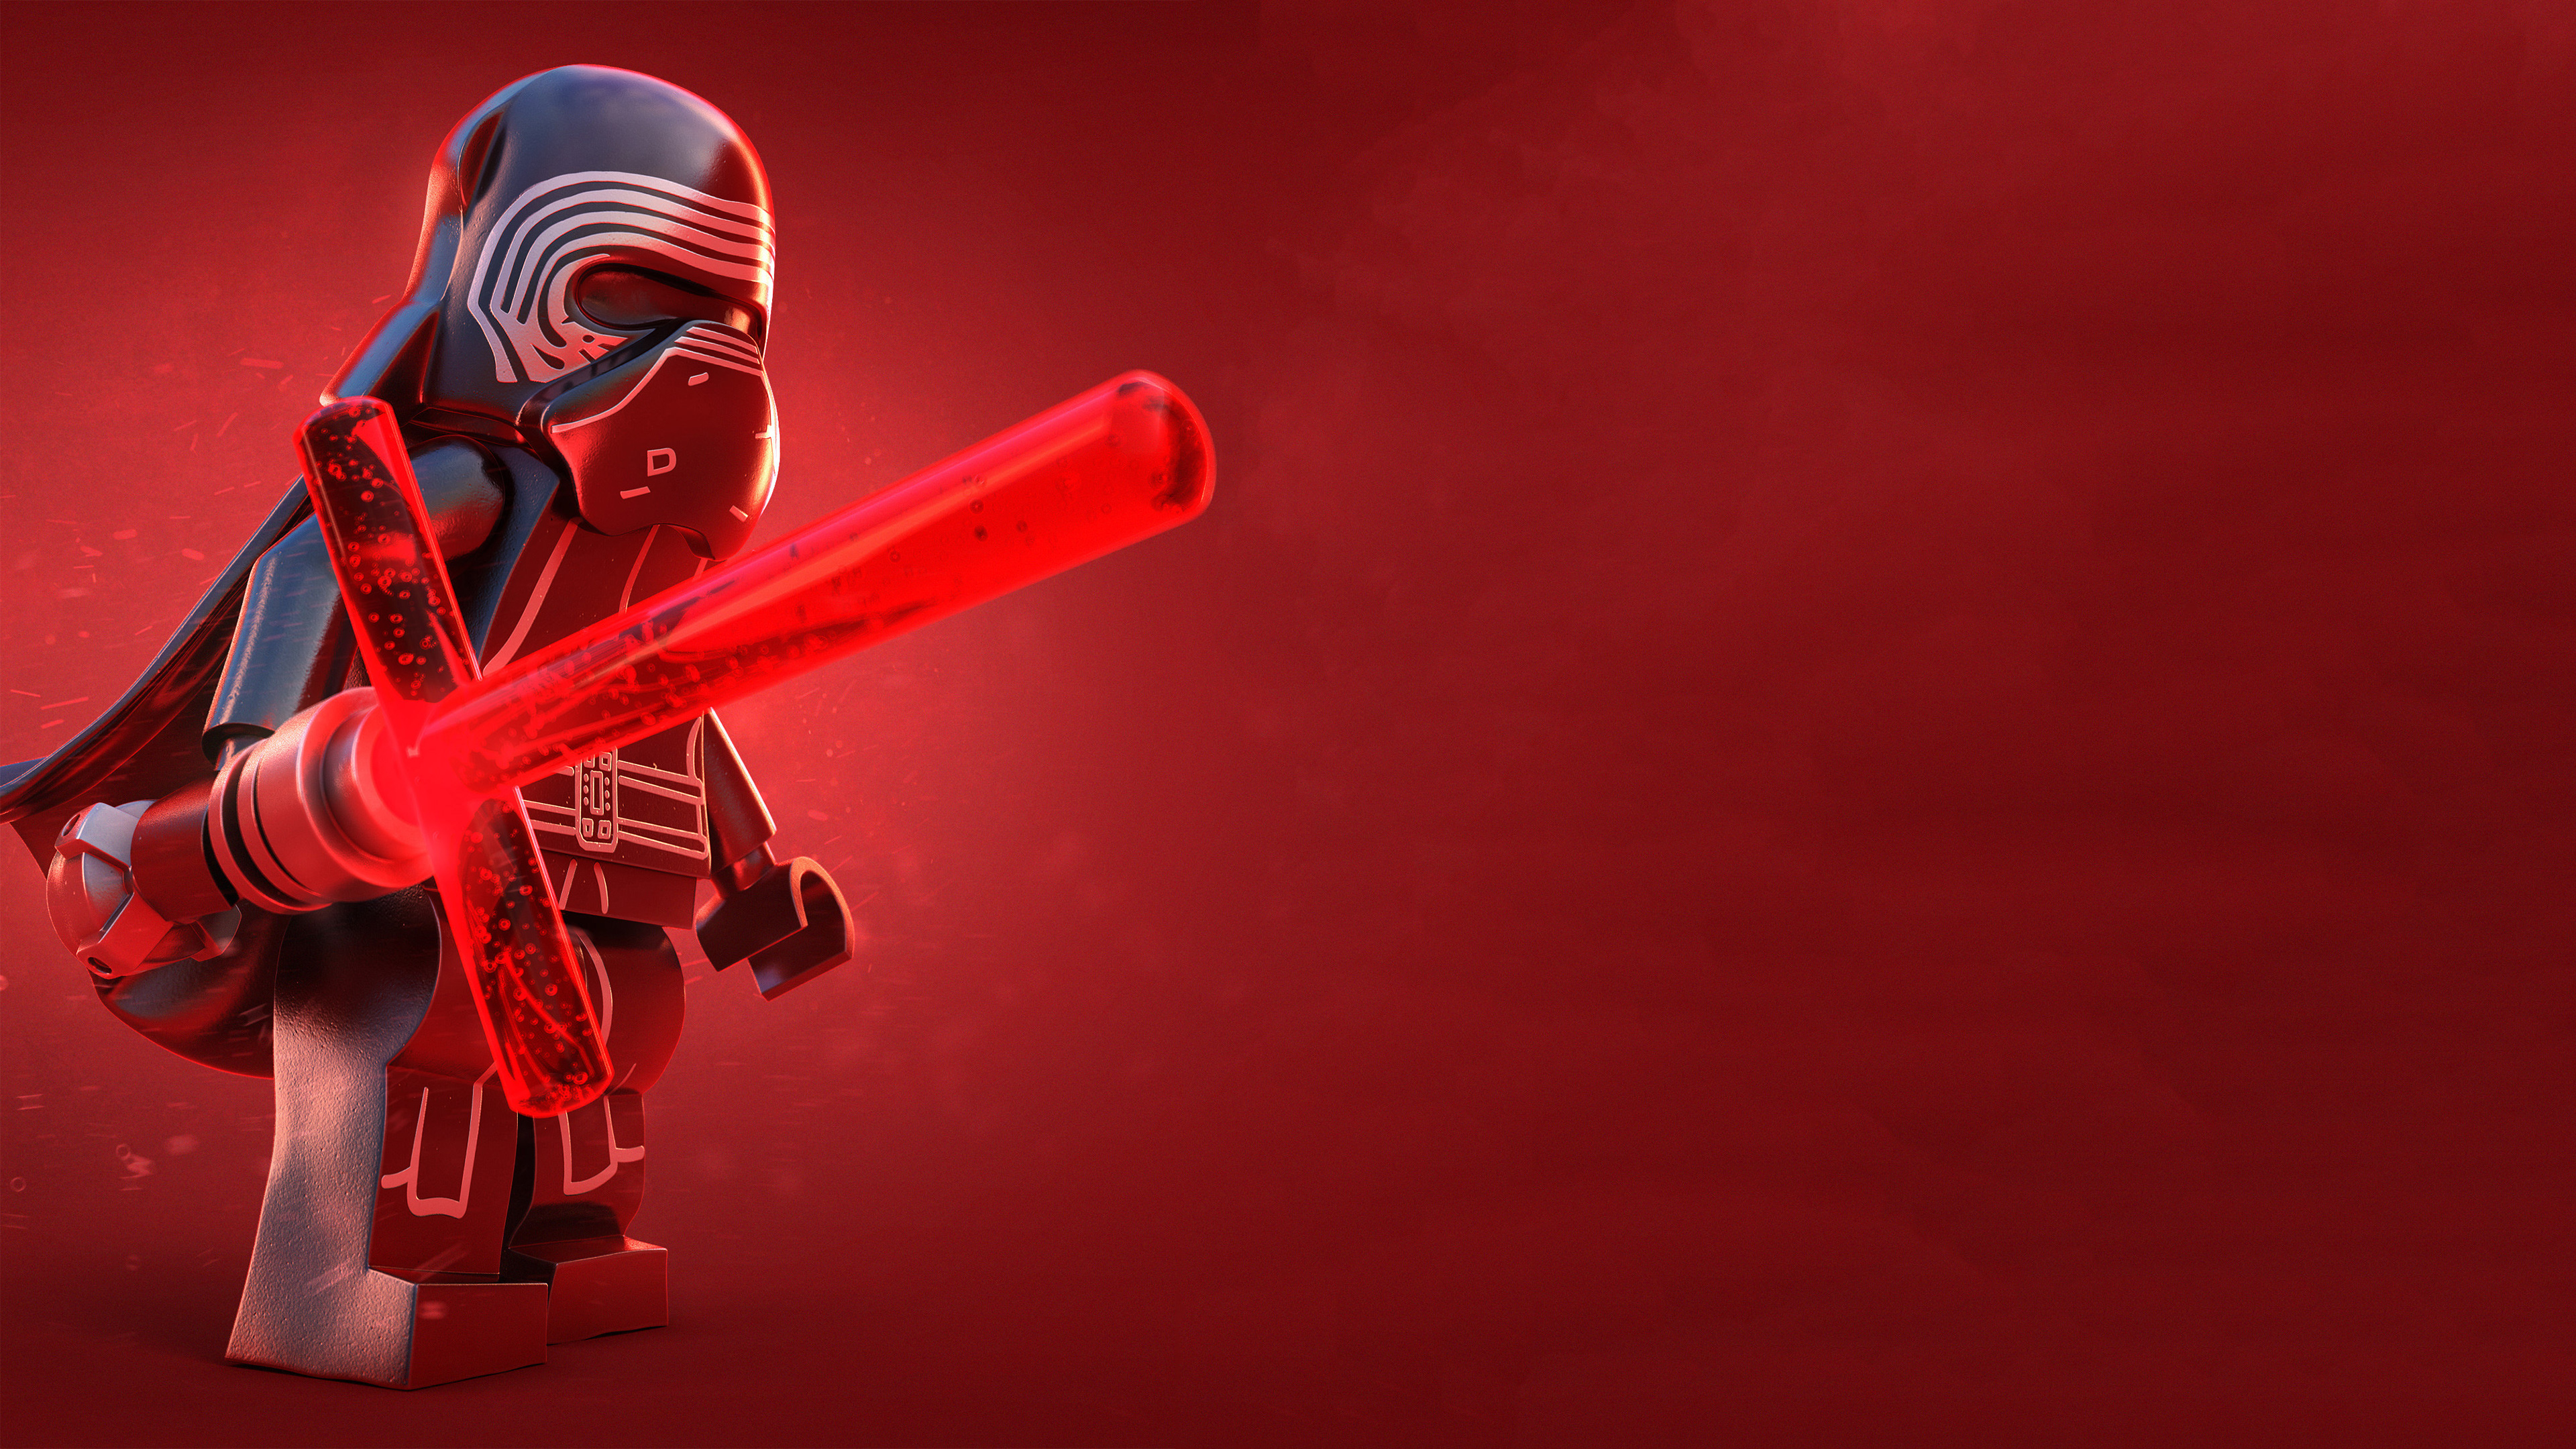 The Dark Side Lego Hd Artist 4k Wallpapers Images Backgrounds Photos And Pictures